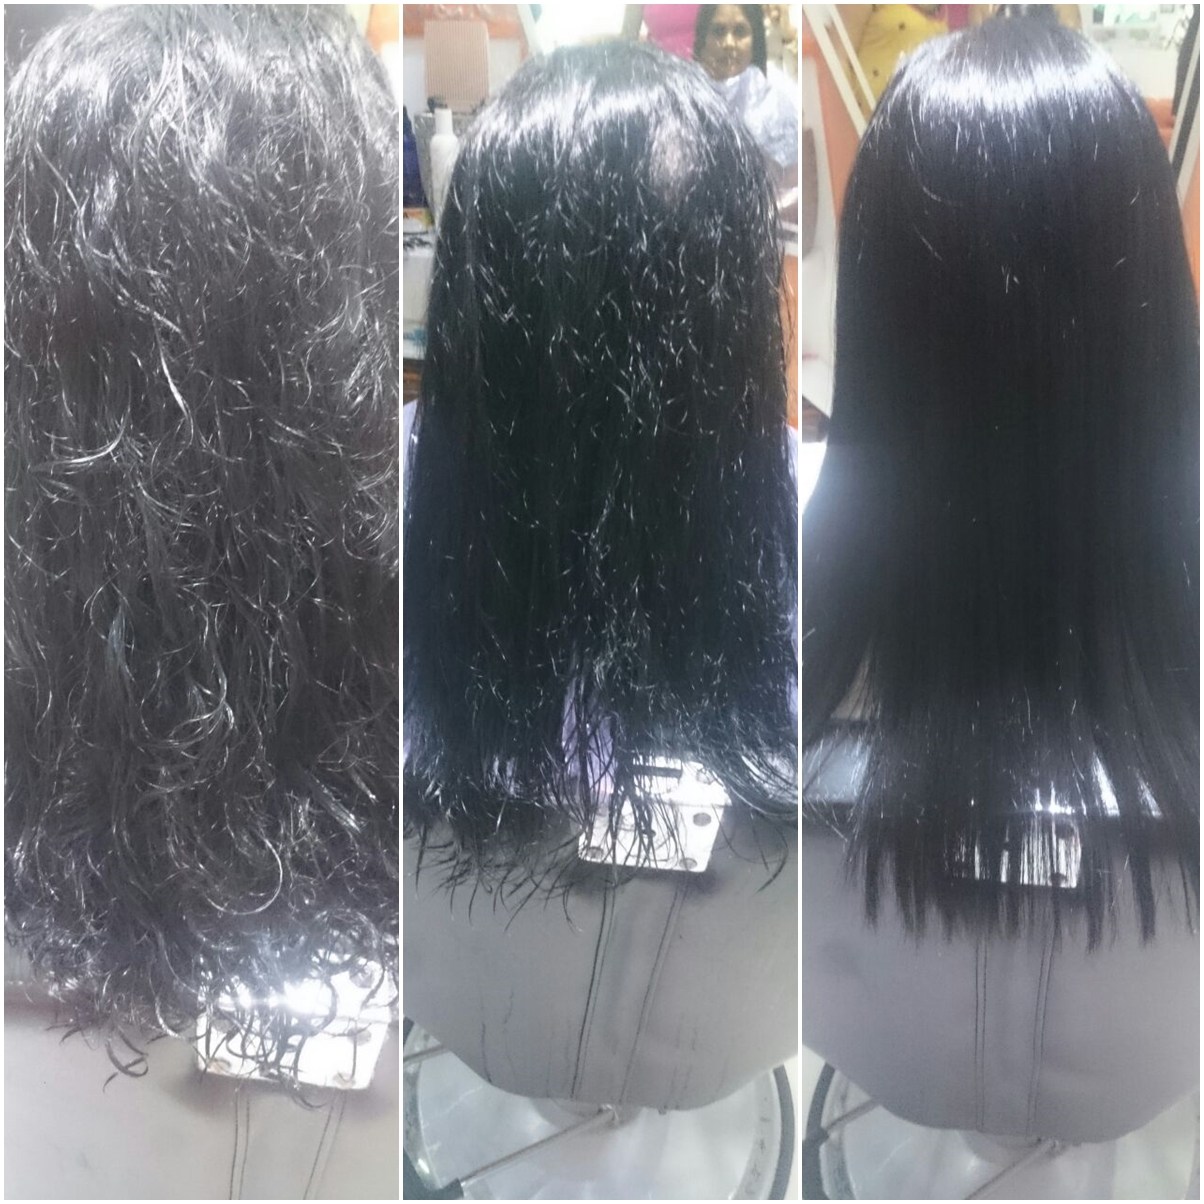 Permanent Hair Straightening Treatment Products